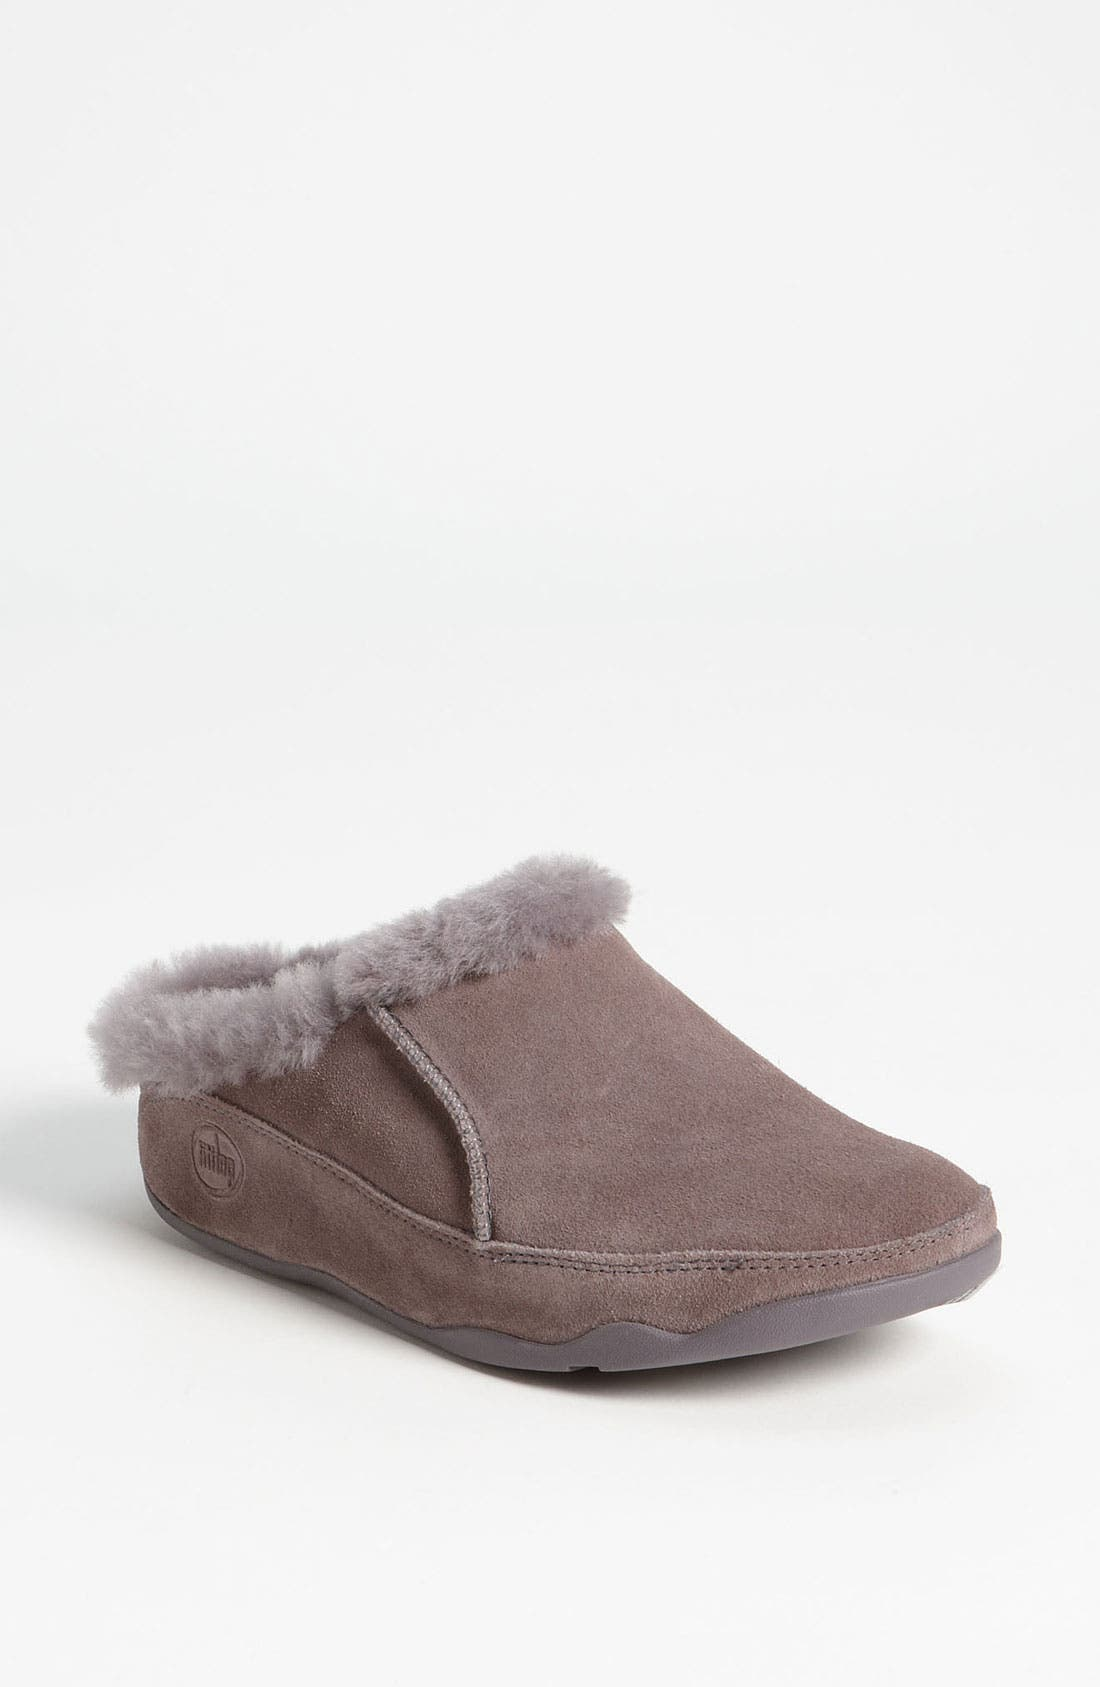 Alternate Image 1 Selected - FitFlop 'Lounge Deluxe' Mule